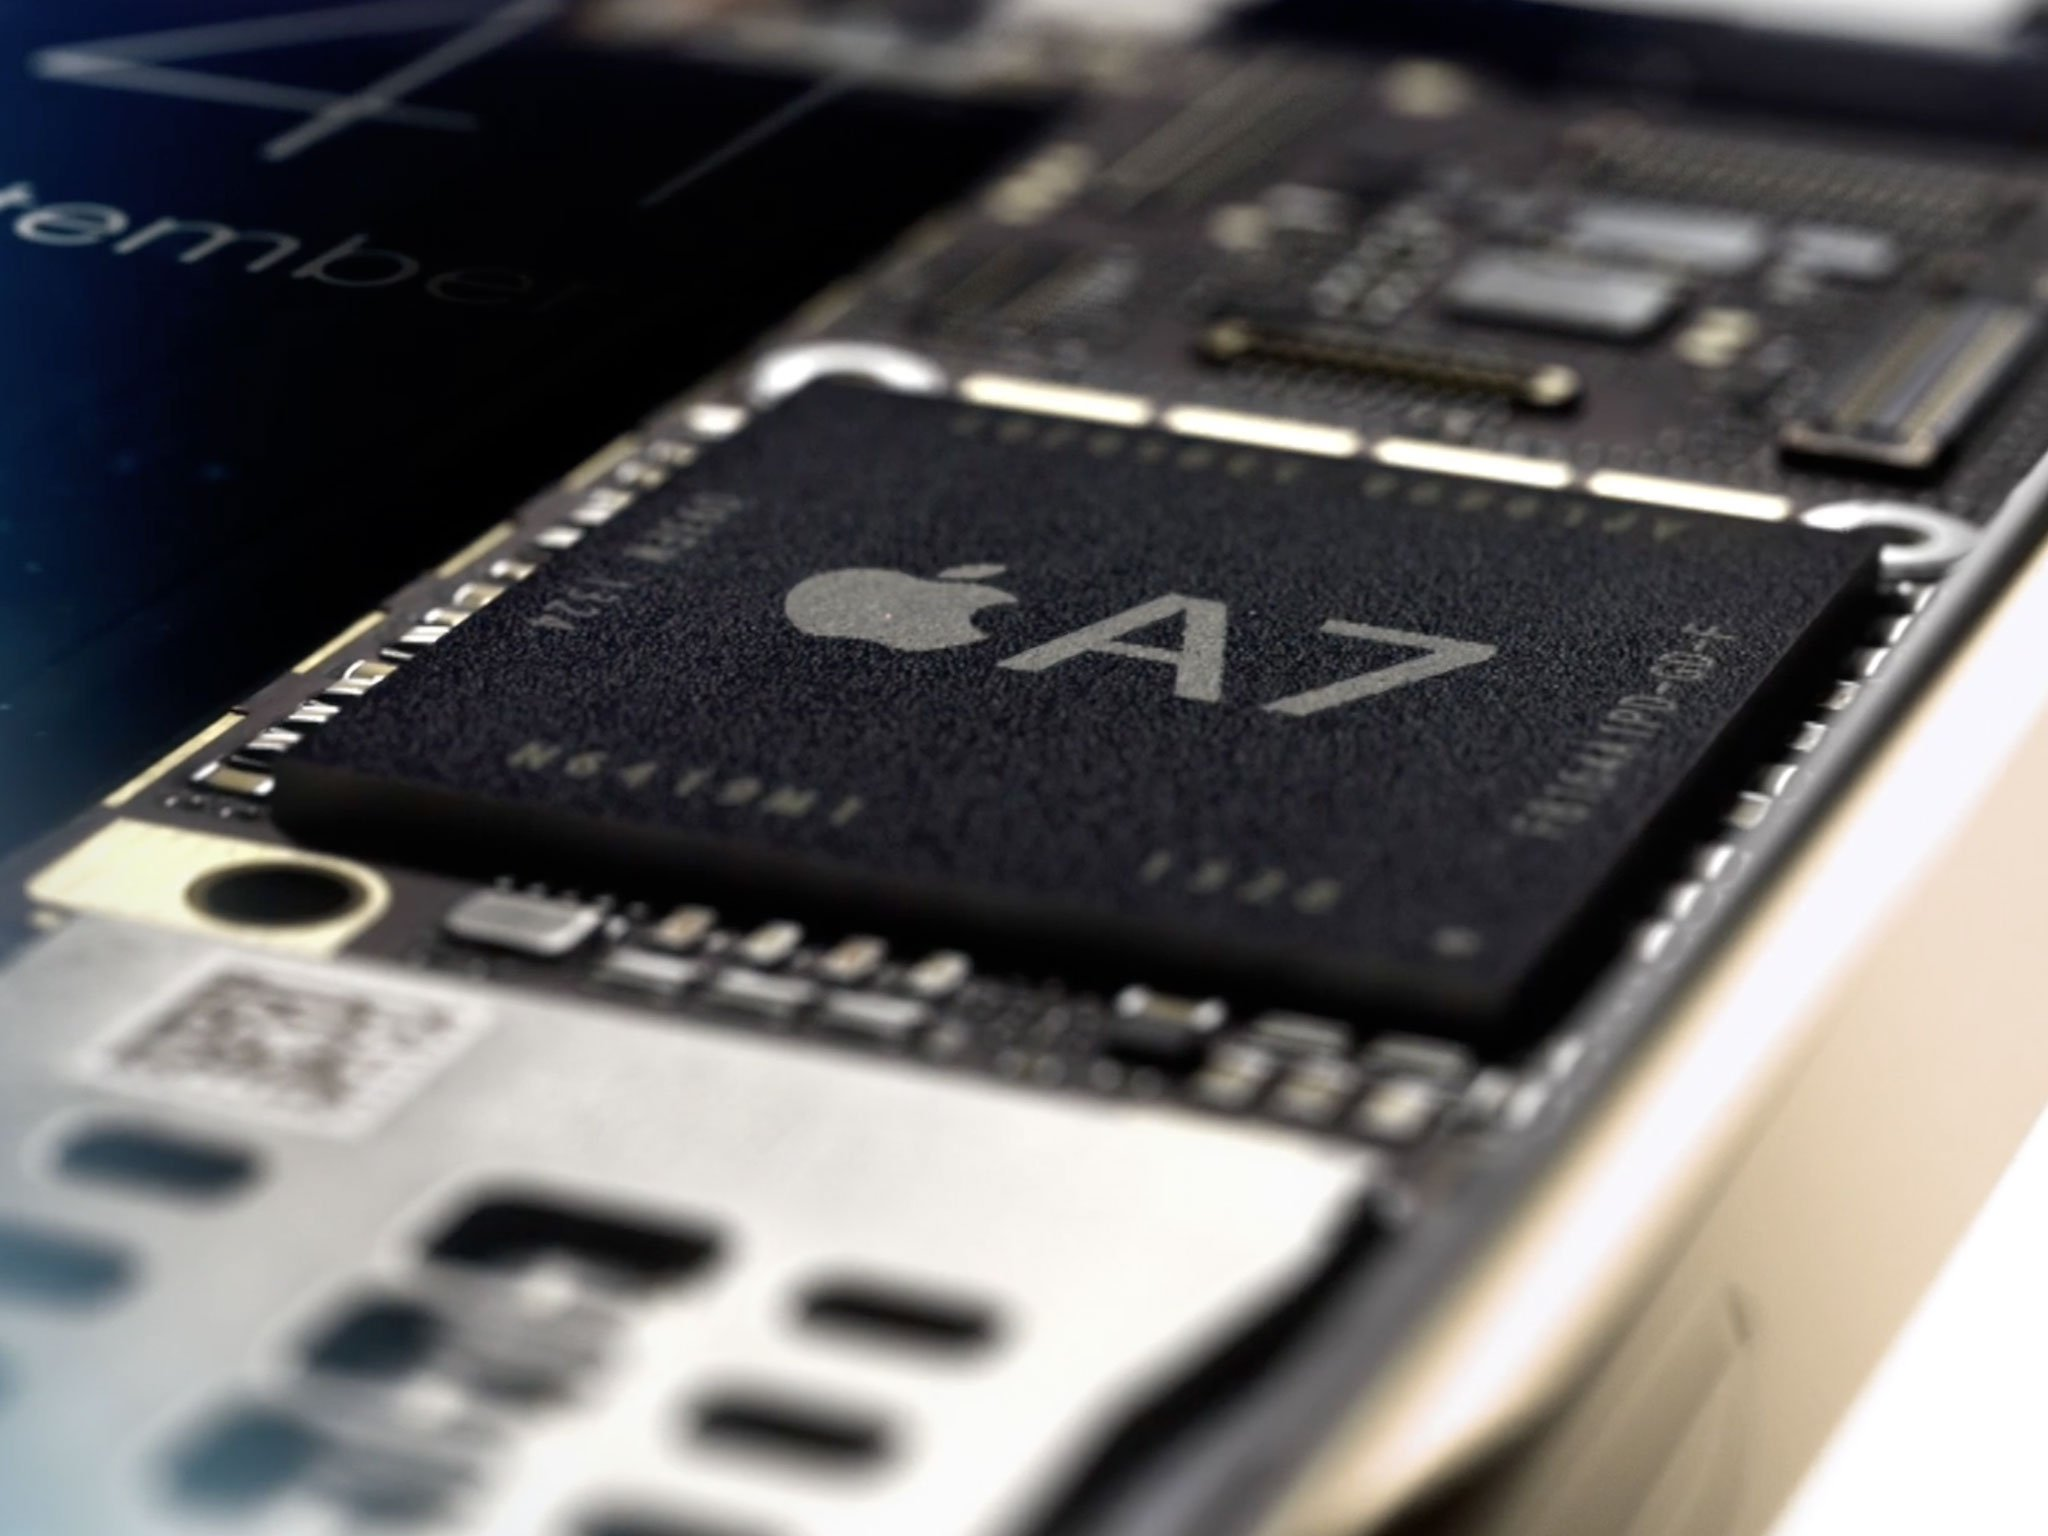 Apple A7 chipset brings 64-bit, twice the speed, OpenGL ES 3.0 gaming